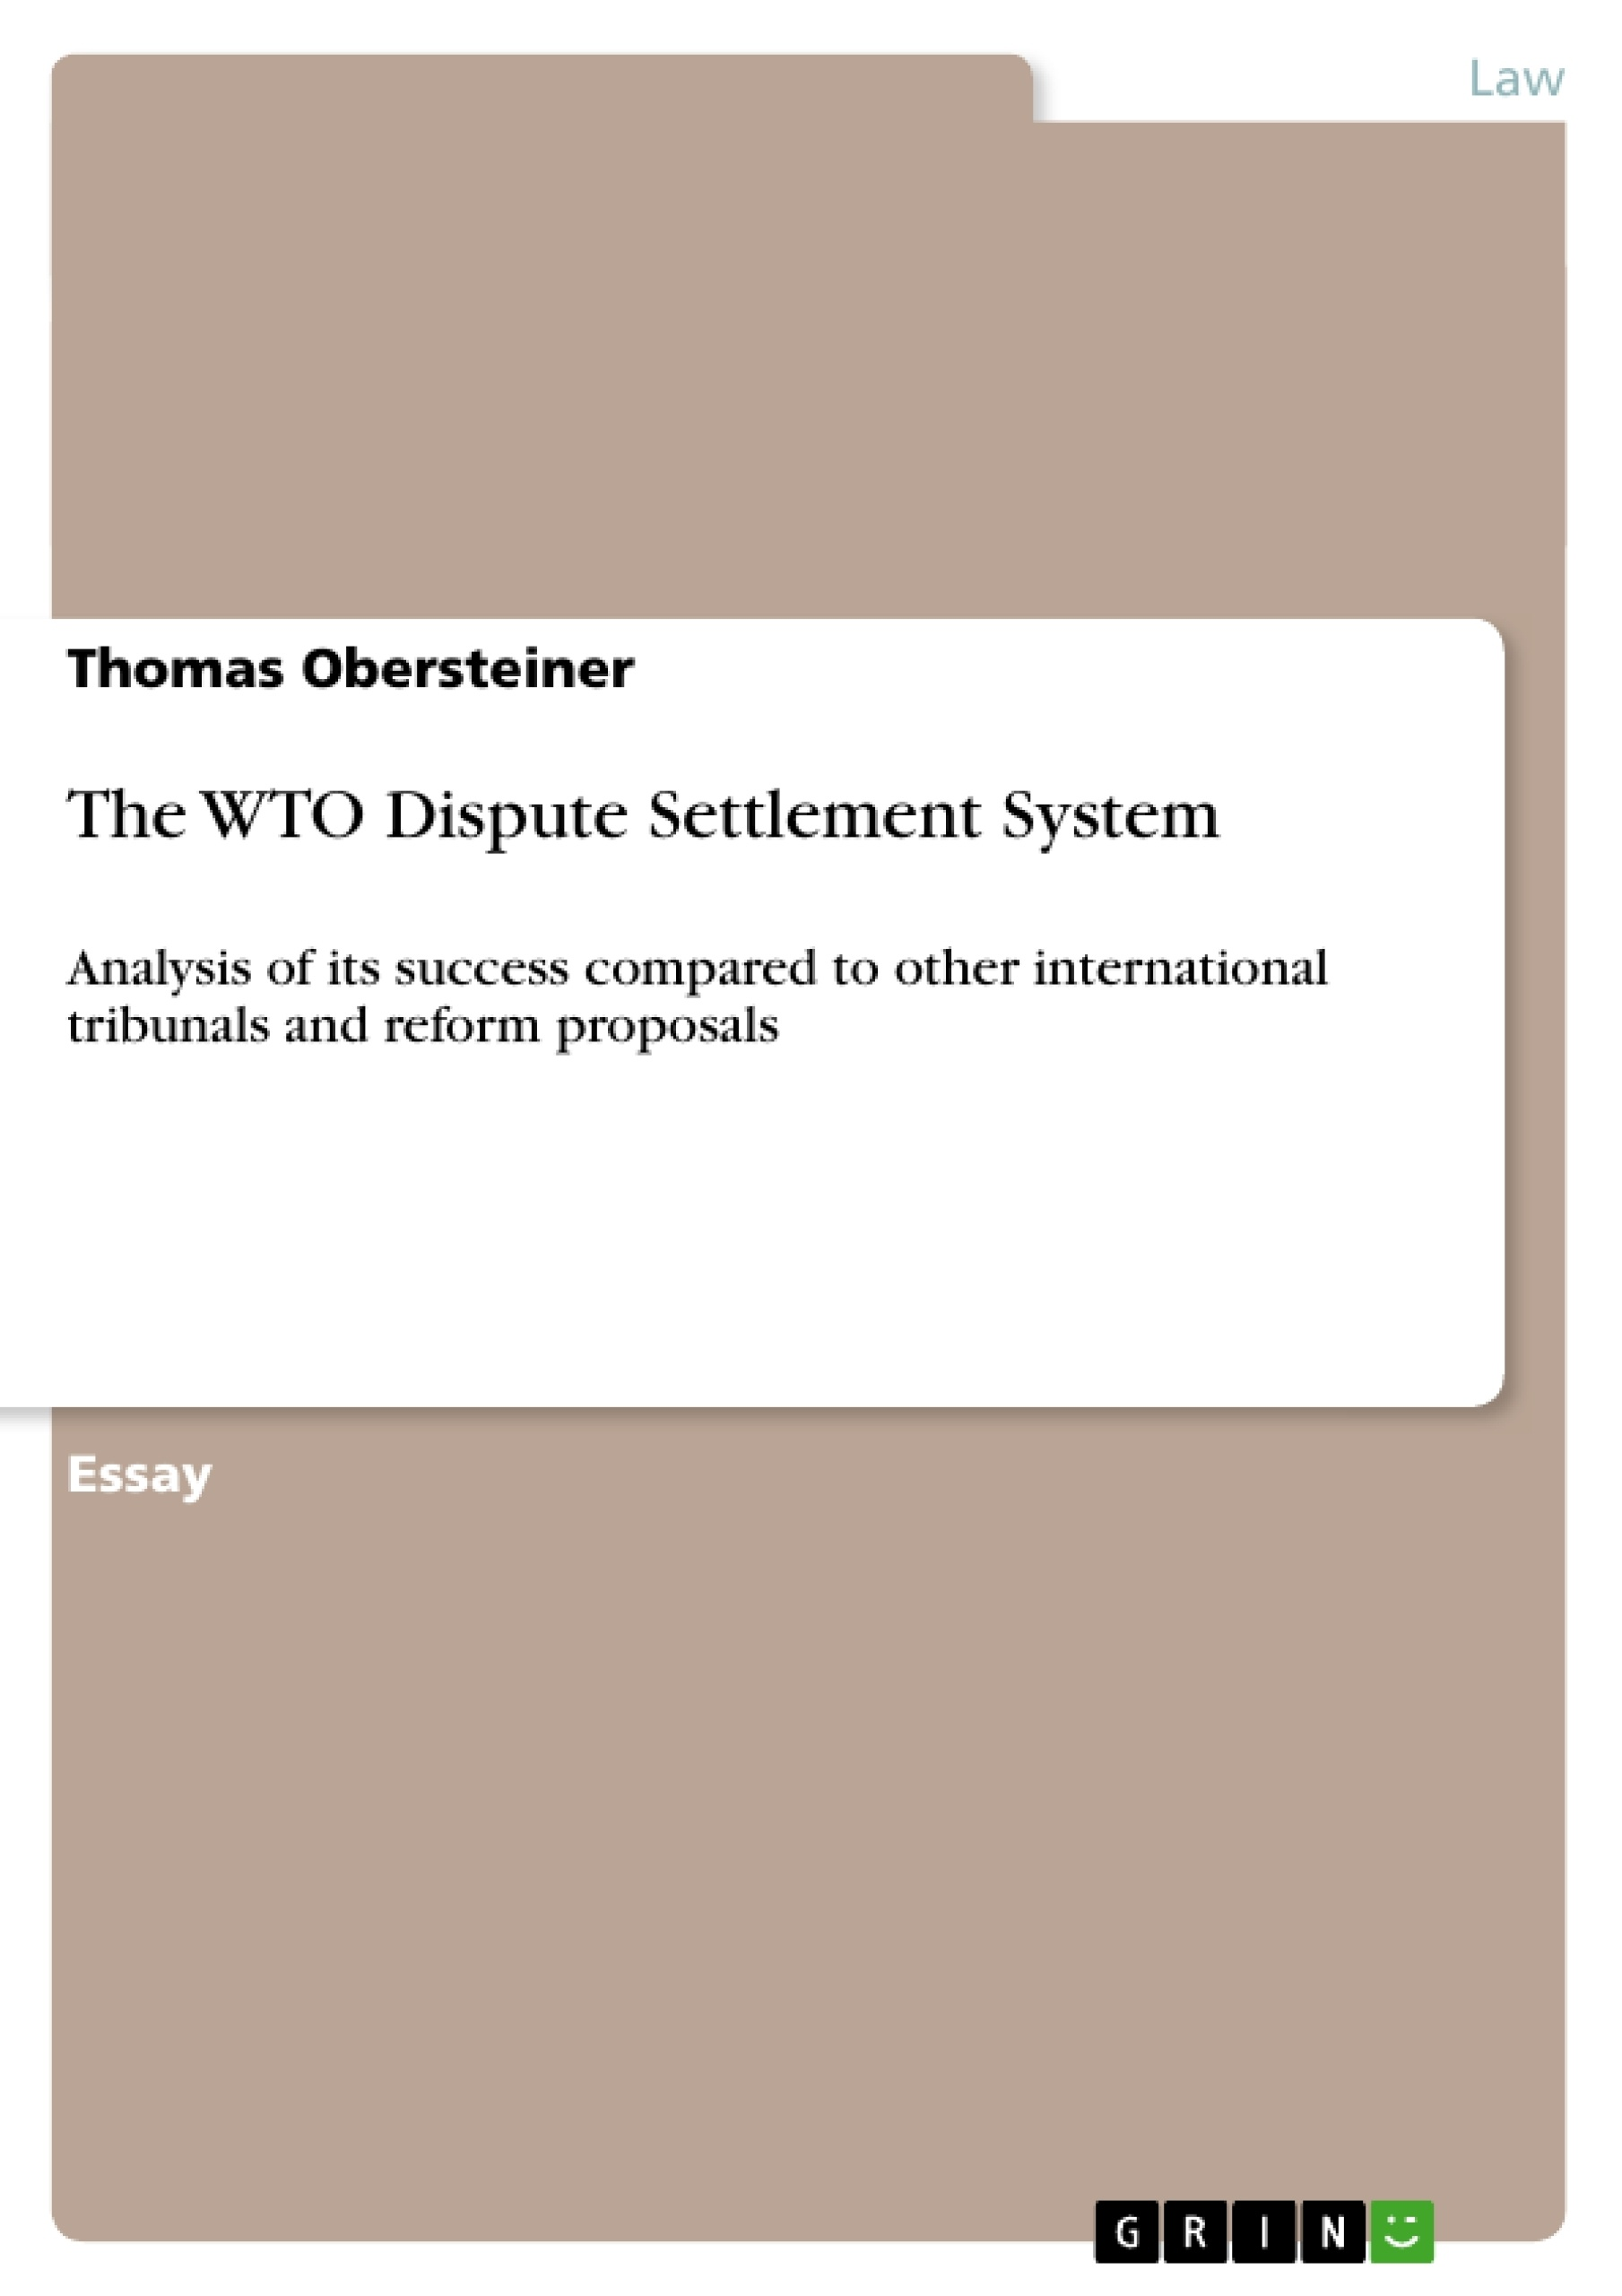 Title: The WTO Dispute Settlement System